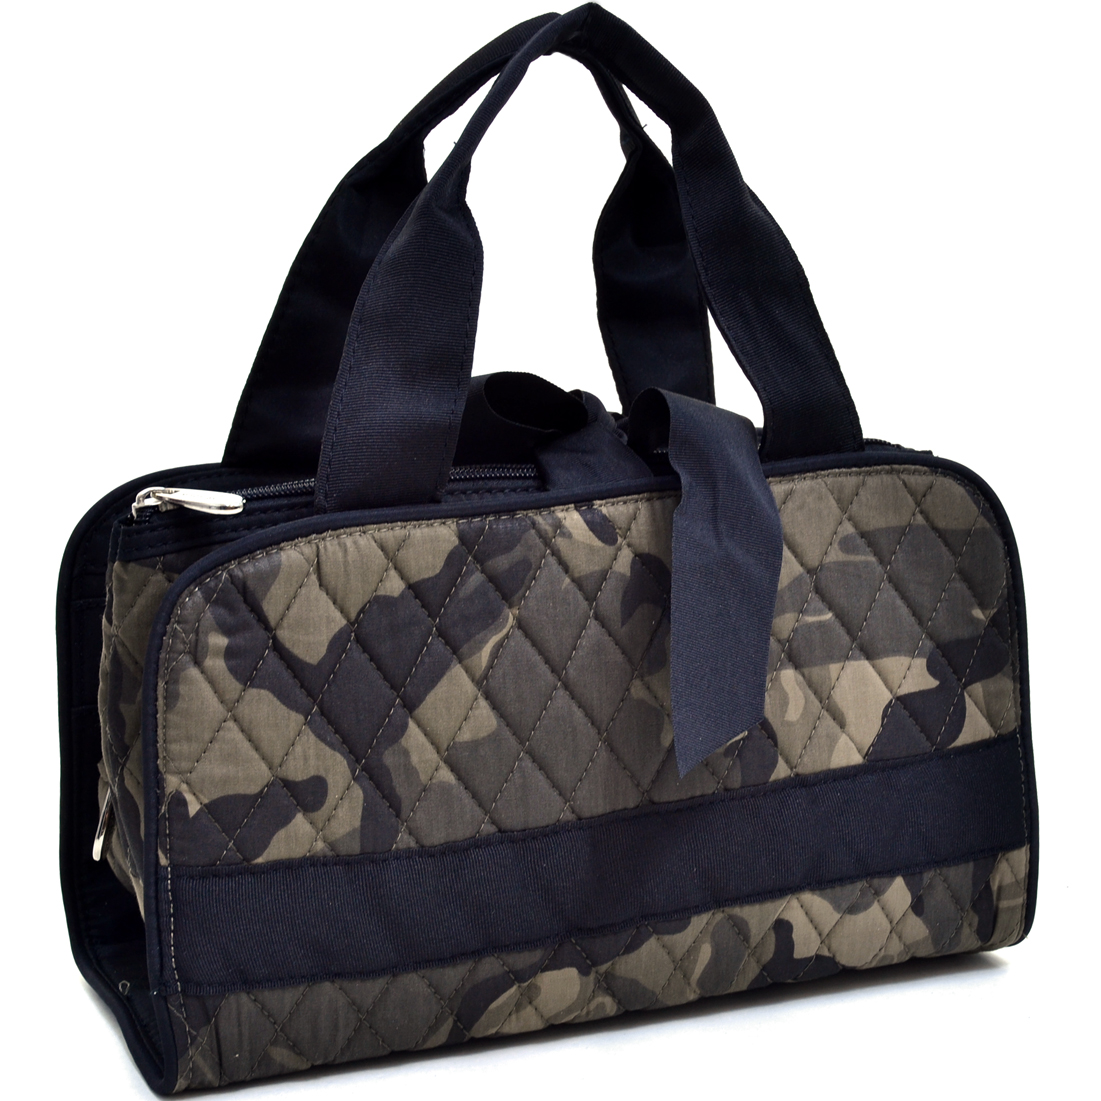 3 Piece Quilted Camouflage Cosmetics Case